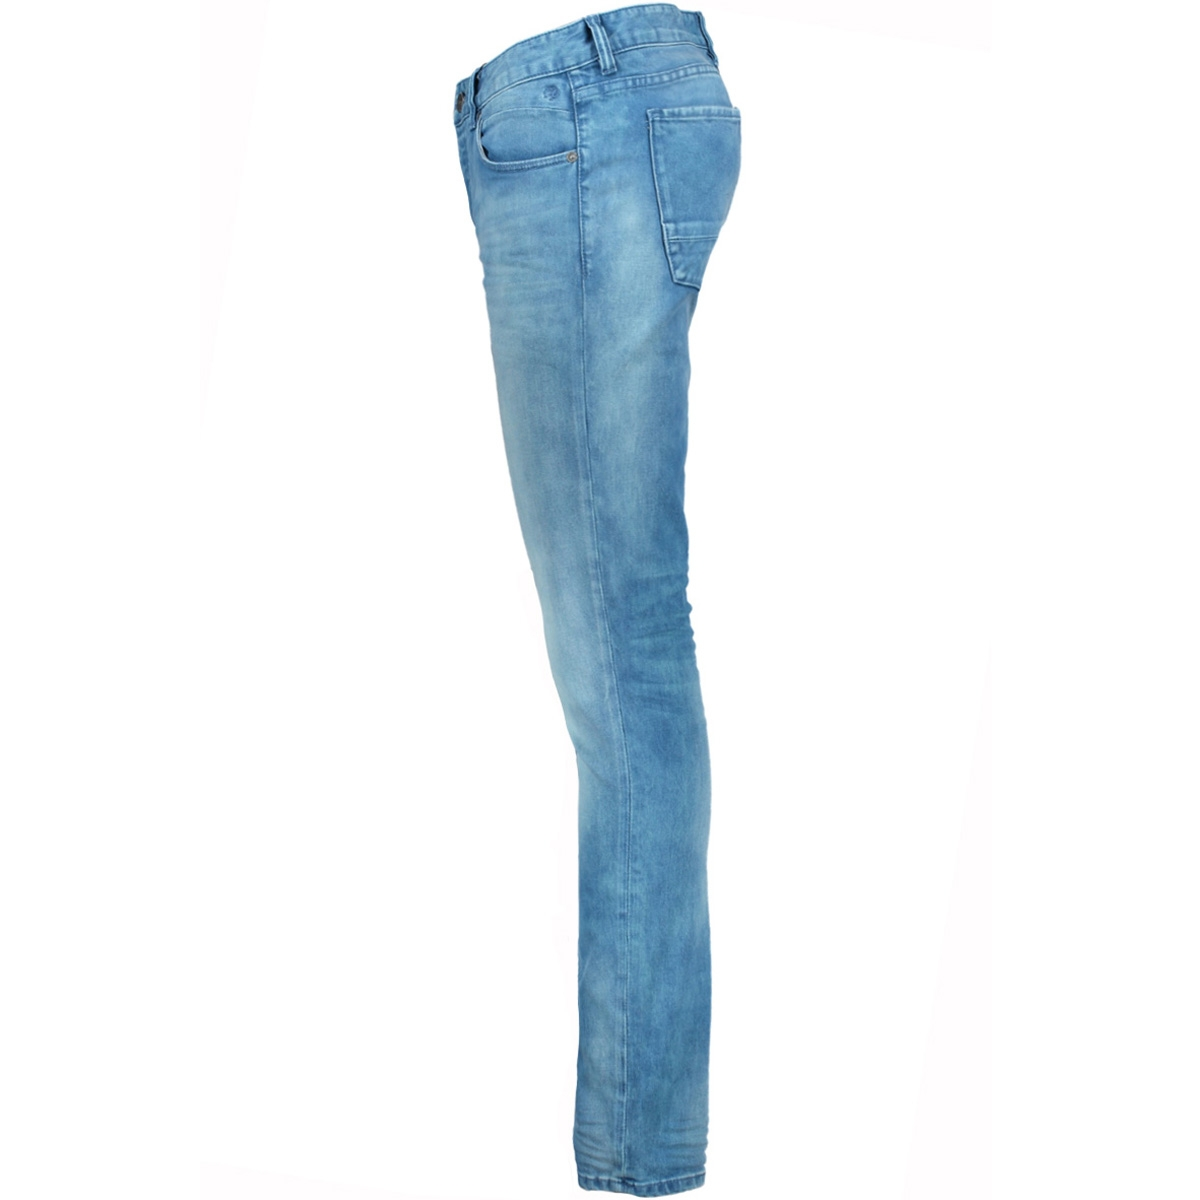 ctr181205 cast iron jeans sgt